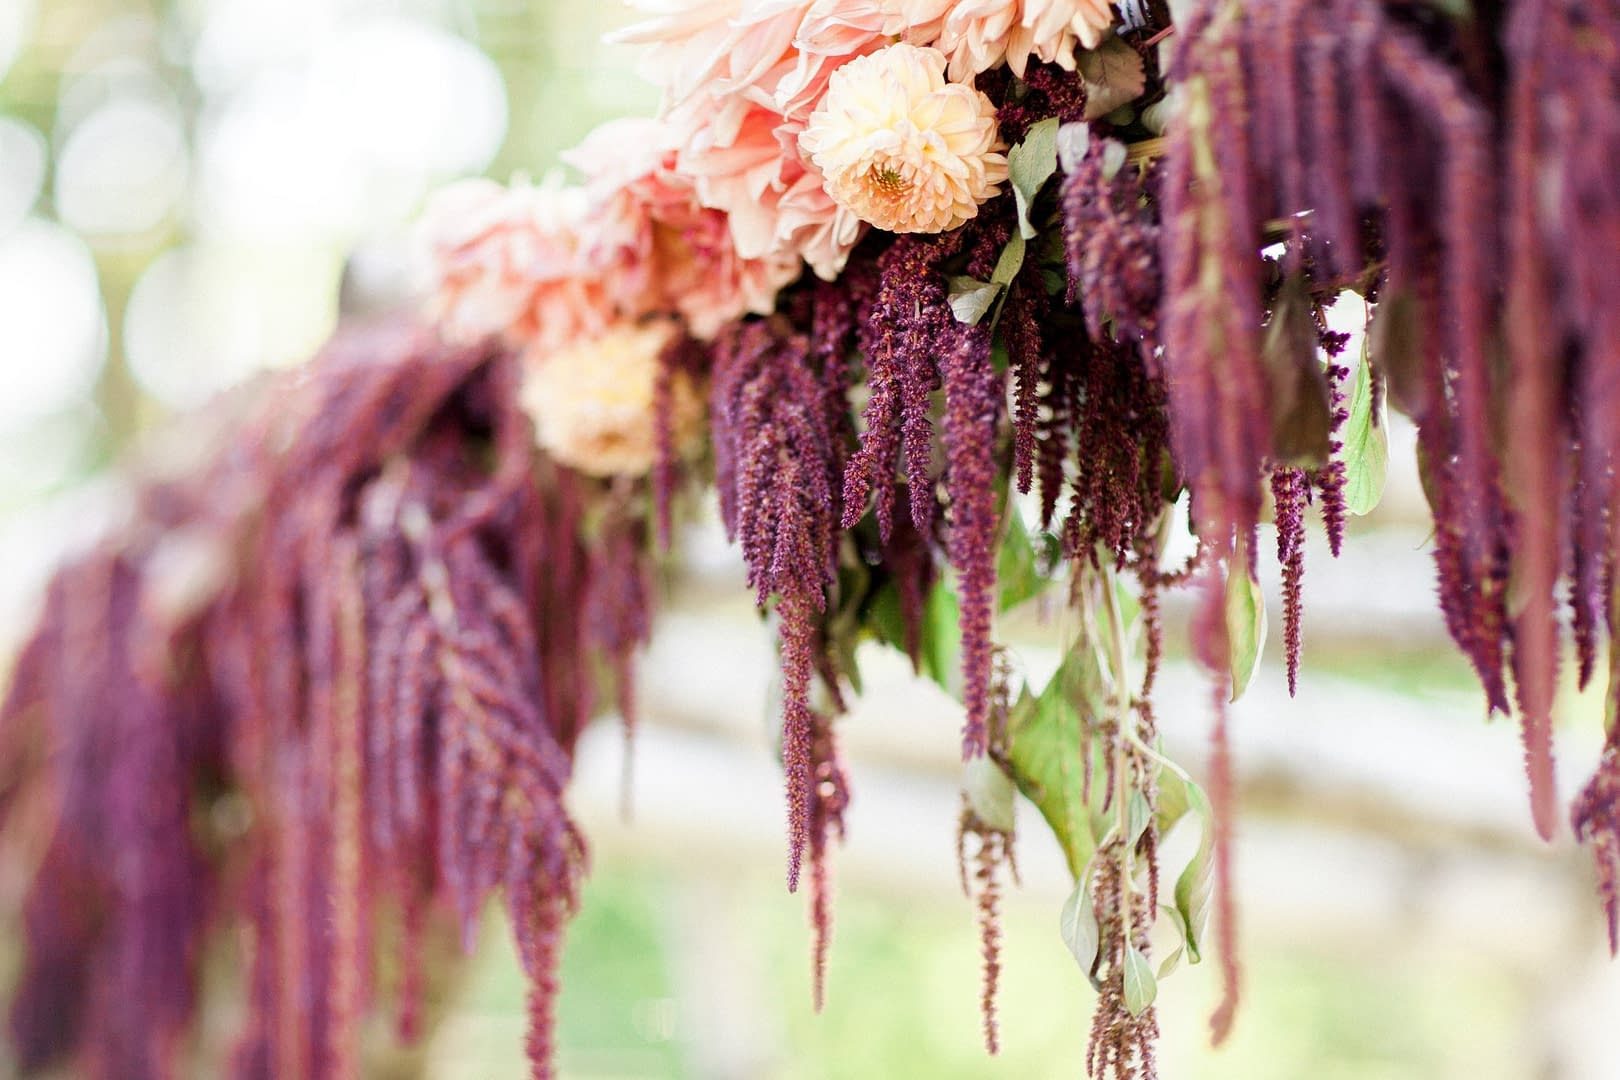 A modern fall floral arbor of September flowers in a moody color palette by Nectar and Root, Vermont wedding florist at Stowehof Inn in Stowe, Vermont.